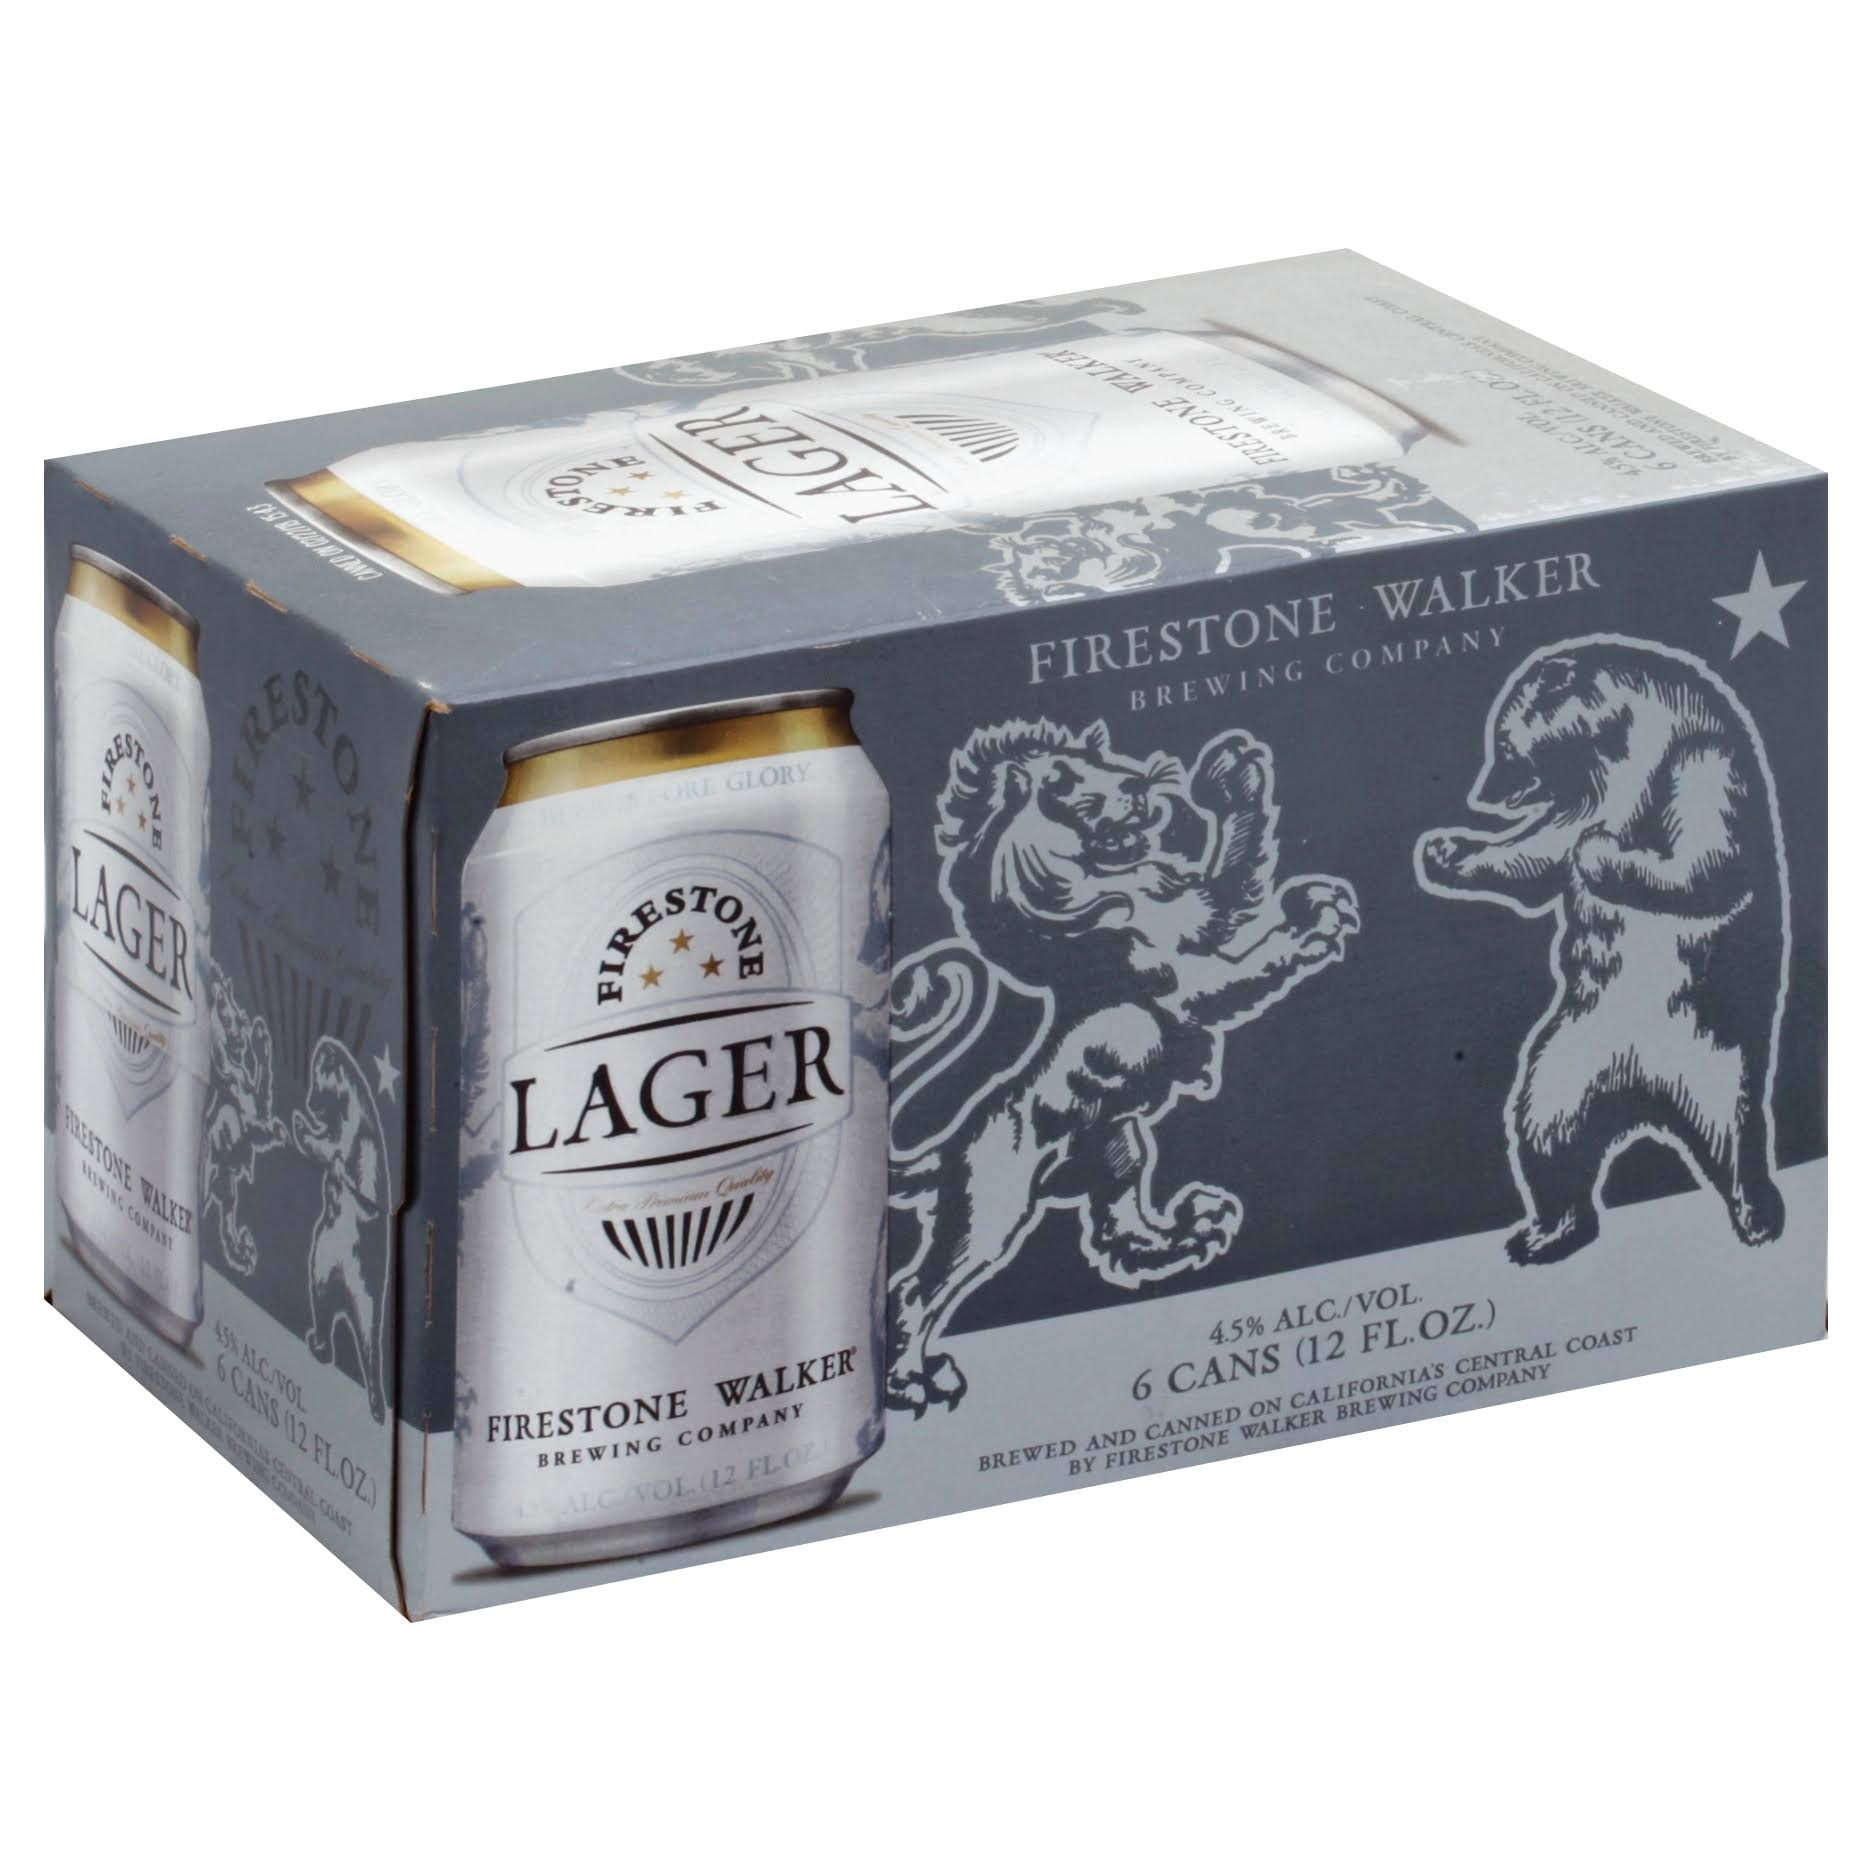 Firestone Walker Beer, Lager, 6 Pack - 6 pack, 12 fl oz cans